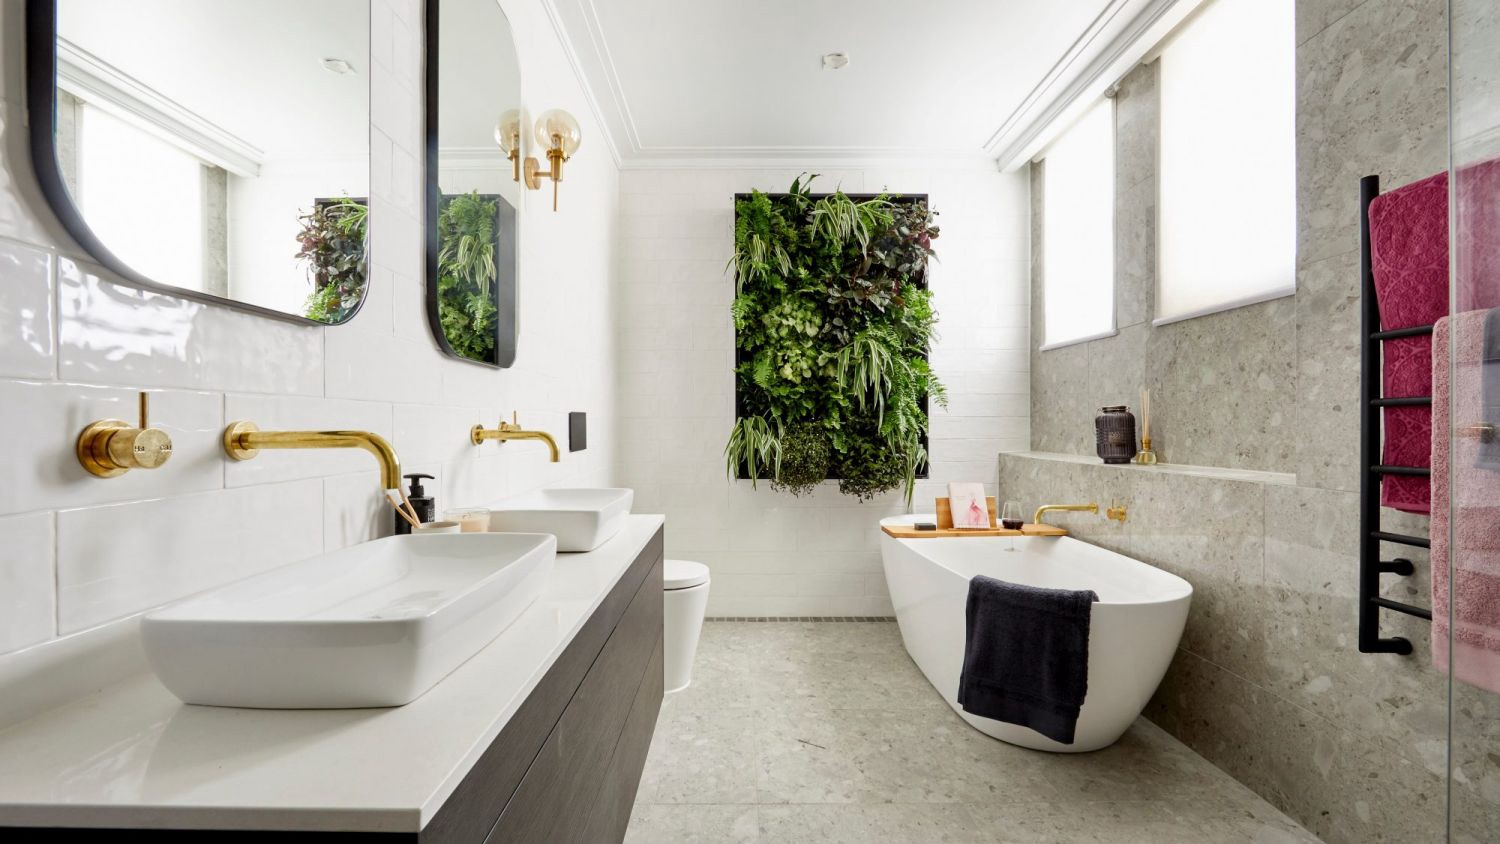 THE TOP BATHROOM TRENDS FOR 8. Planning a new bathroom in 8